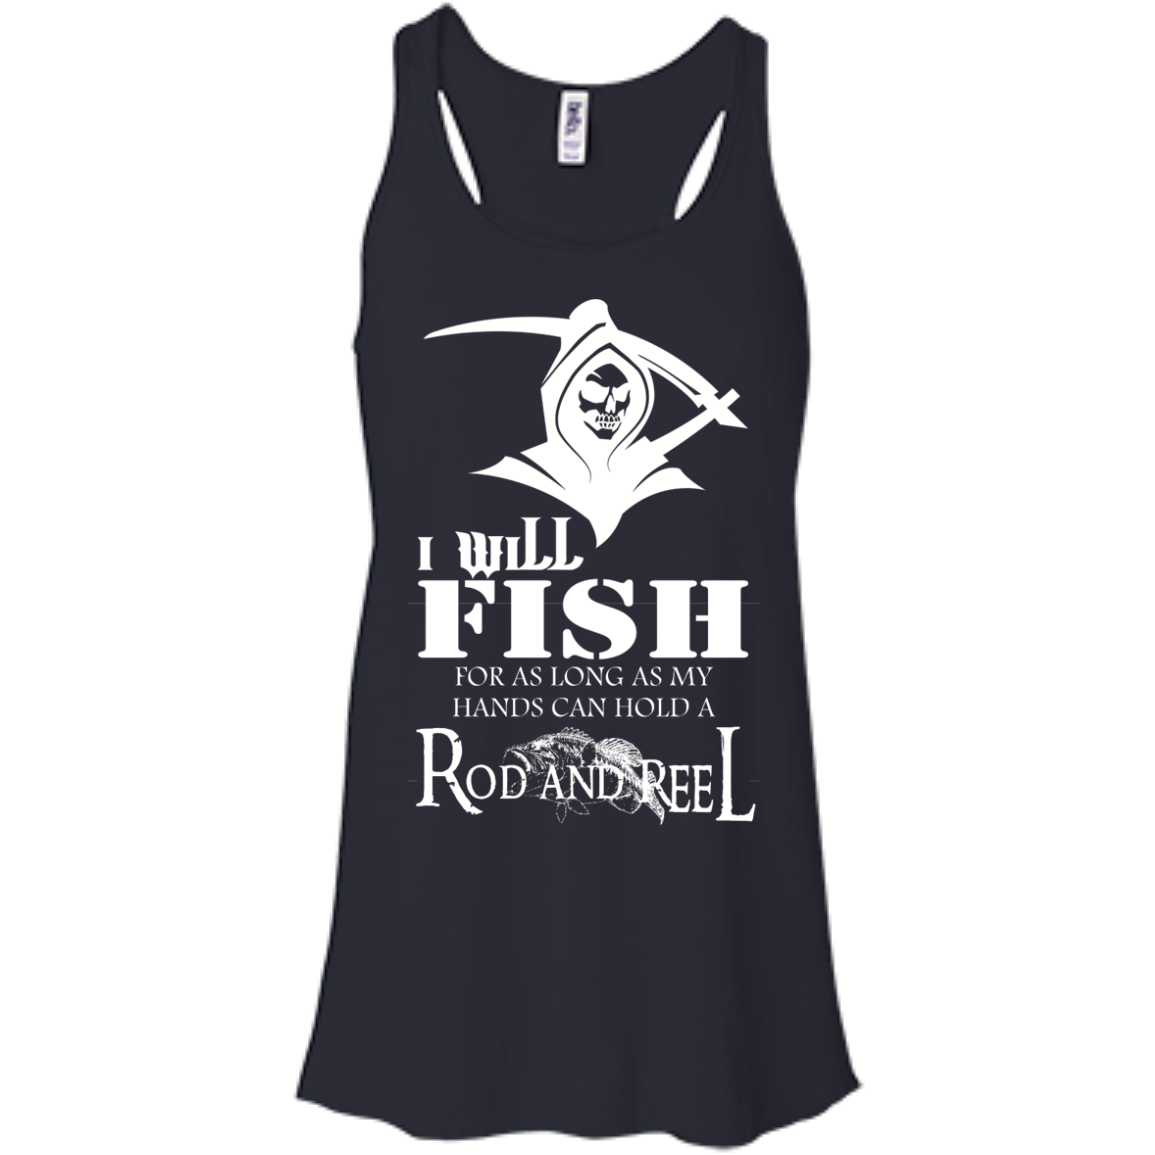 I Will Fish For As Long As My Hands Can Hold A Rod And Reel Flowy Racerback Tanks